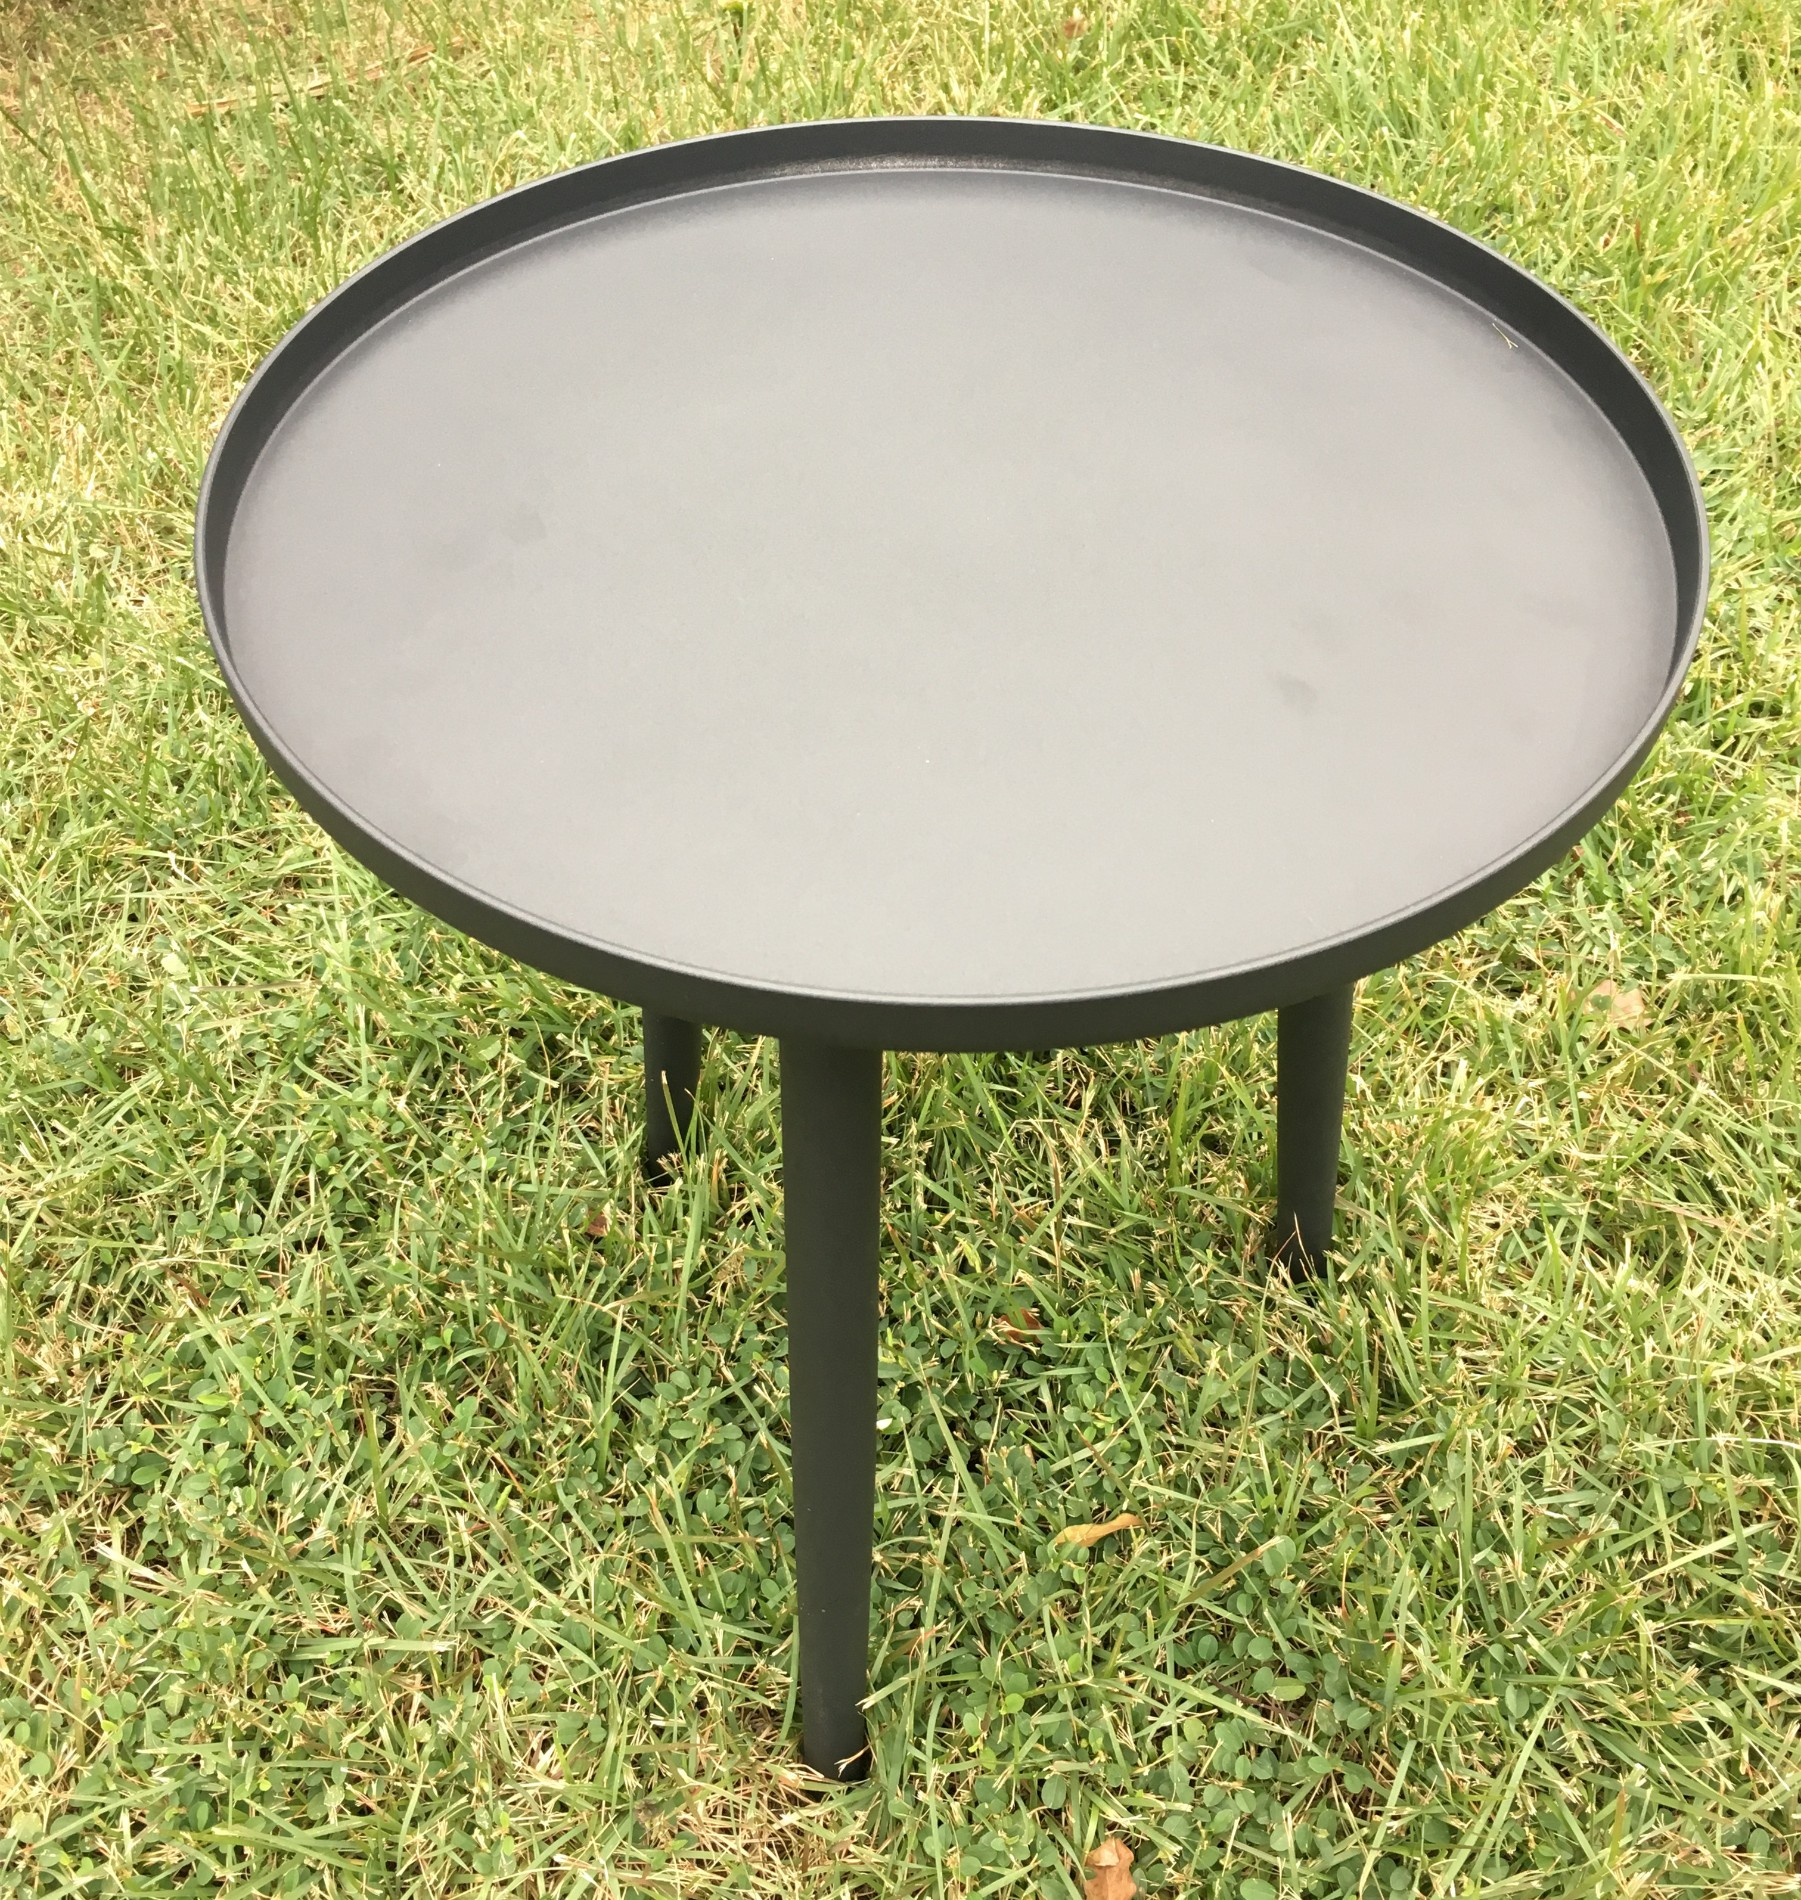 Aluminum Colorful Cheap Side Tables Manufacturers, Aluminum Colorful Cheap Side Tables Factory, Supply Aluminum Colorful Cheap Side Tables